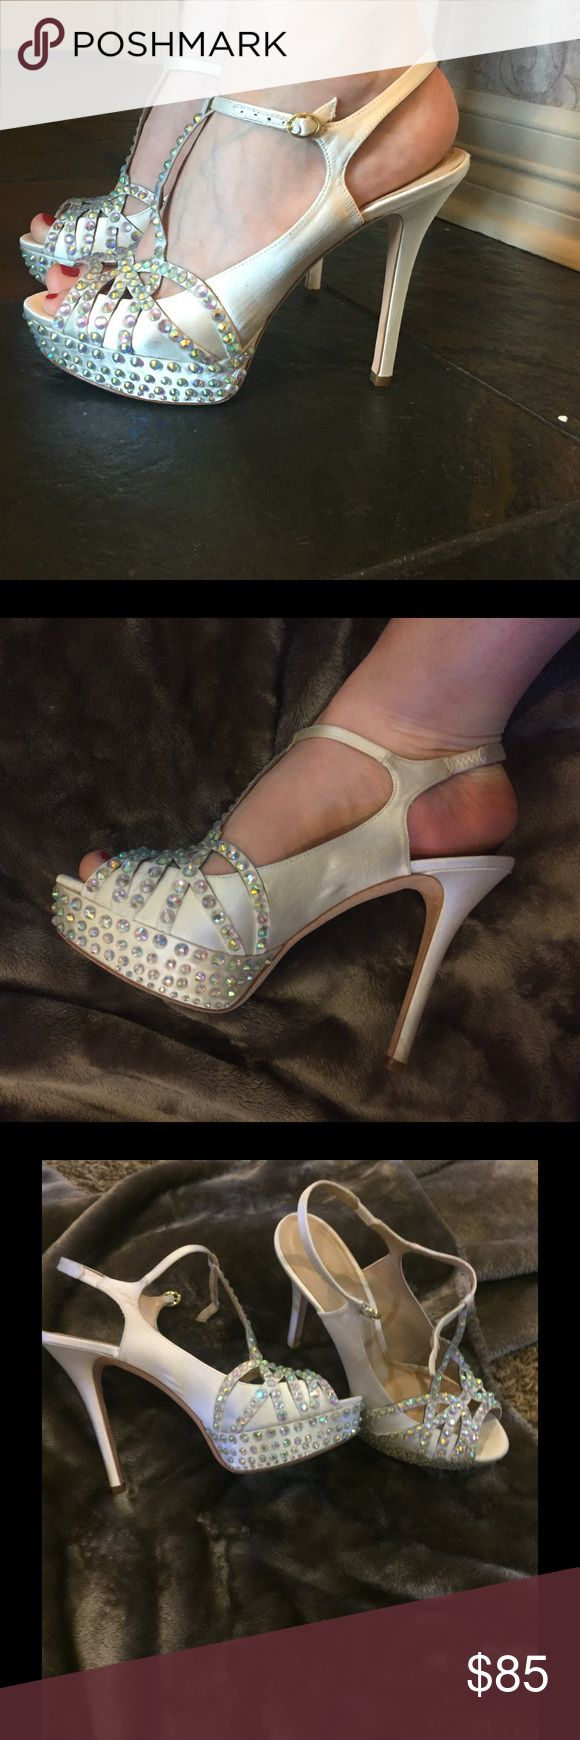 """Brilliant JOAN & DAVID Crystal and Cream Heels 💎! Soooooo Sexy! 💋JOAN & DAVID Crystal and Cream Heels 👠! Size 9M ! These will be your """"Go To"""" heels for a night out! Your legs and feet will look simply, """"WOW"""" and you will want to dance all night 💃! Worn exactly once, great condition 👍🏻 Joan & David Shoes Heels"""